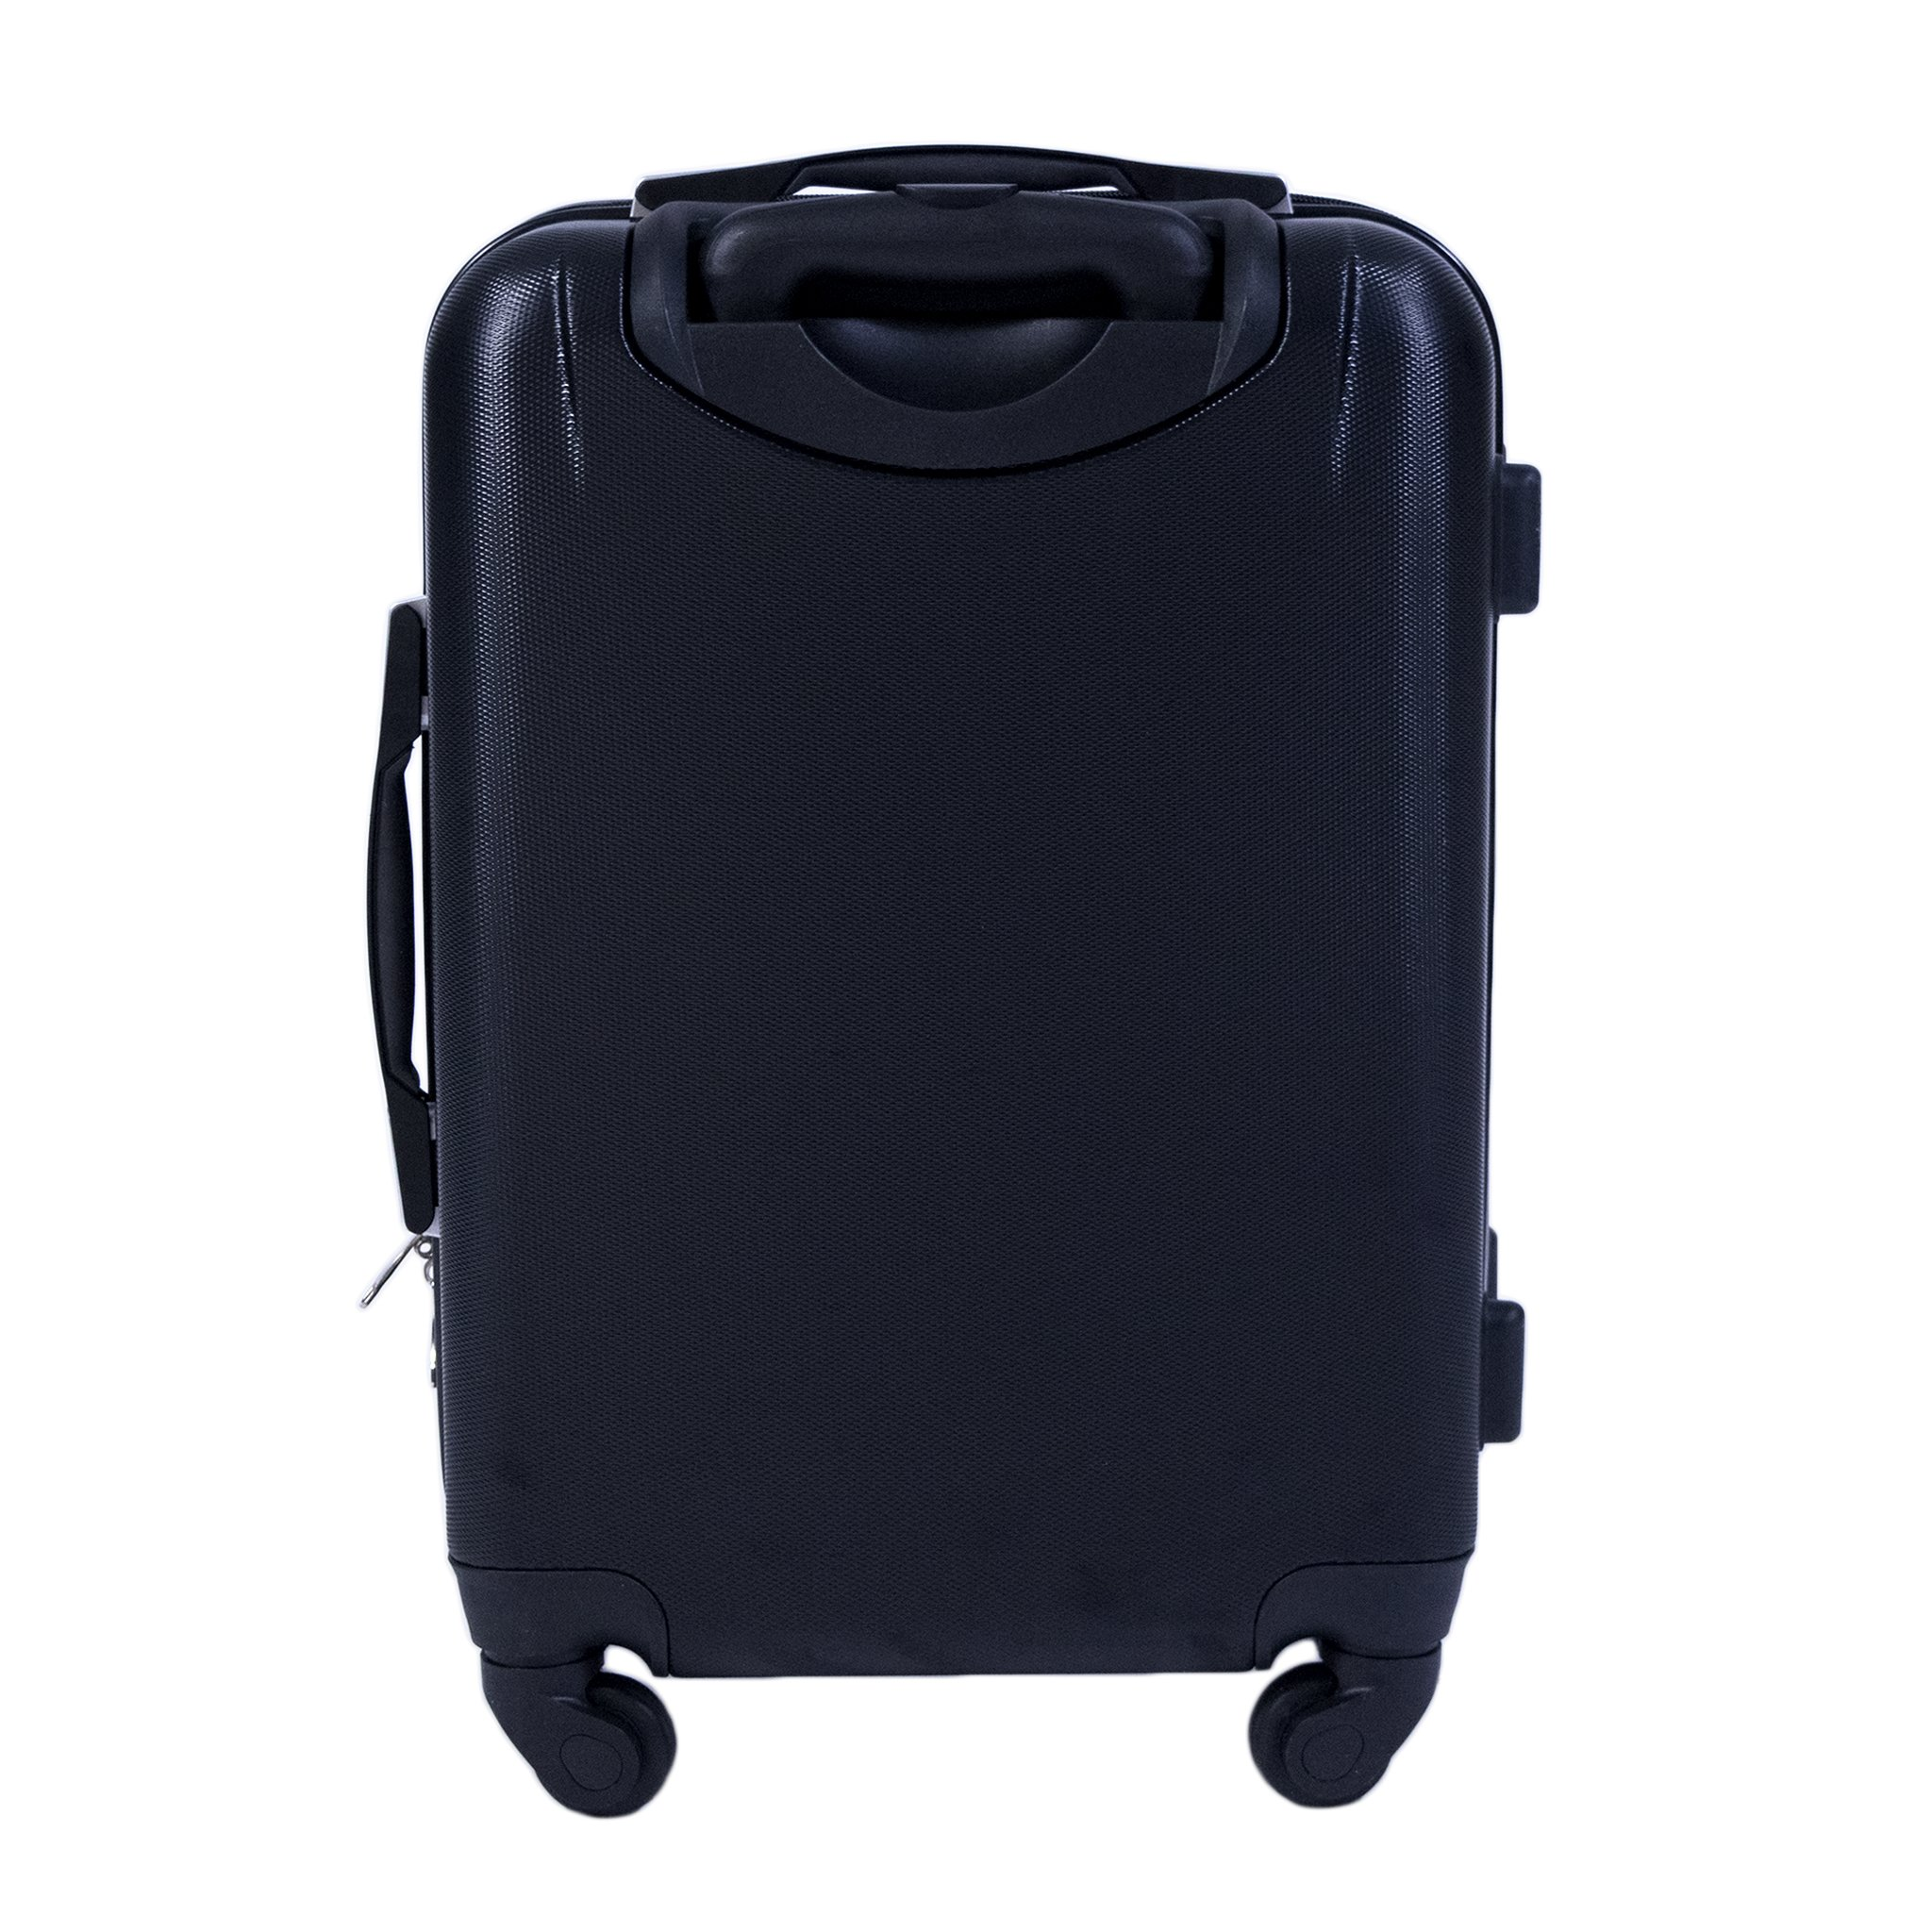 Batman 211n Hardsided Luggage Spinner, Black by Ful (Image #2)